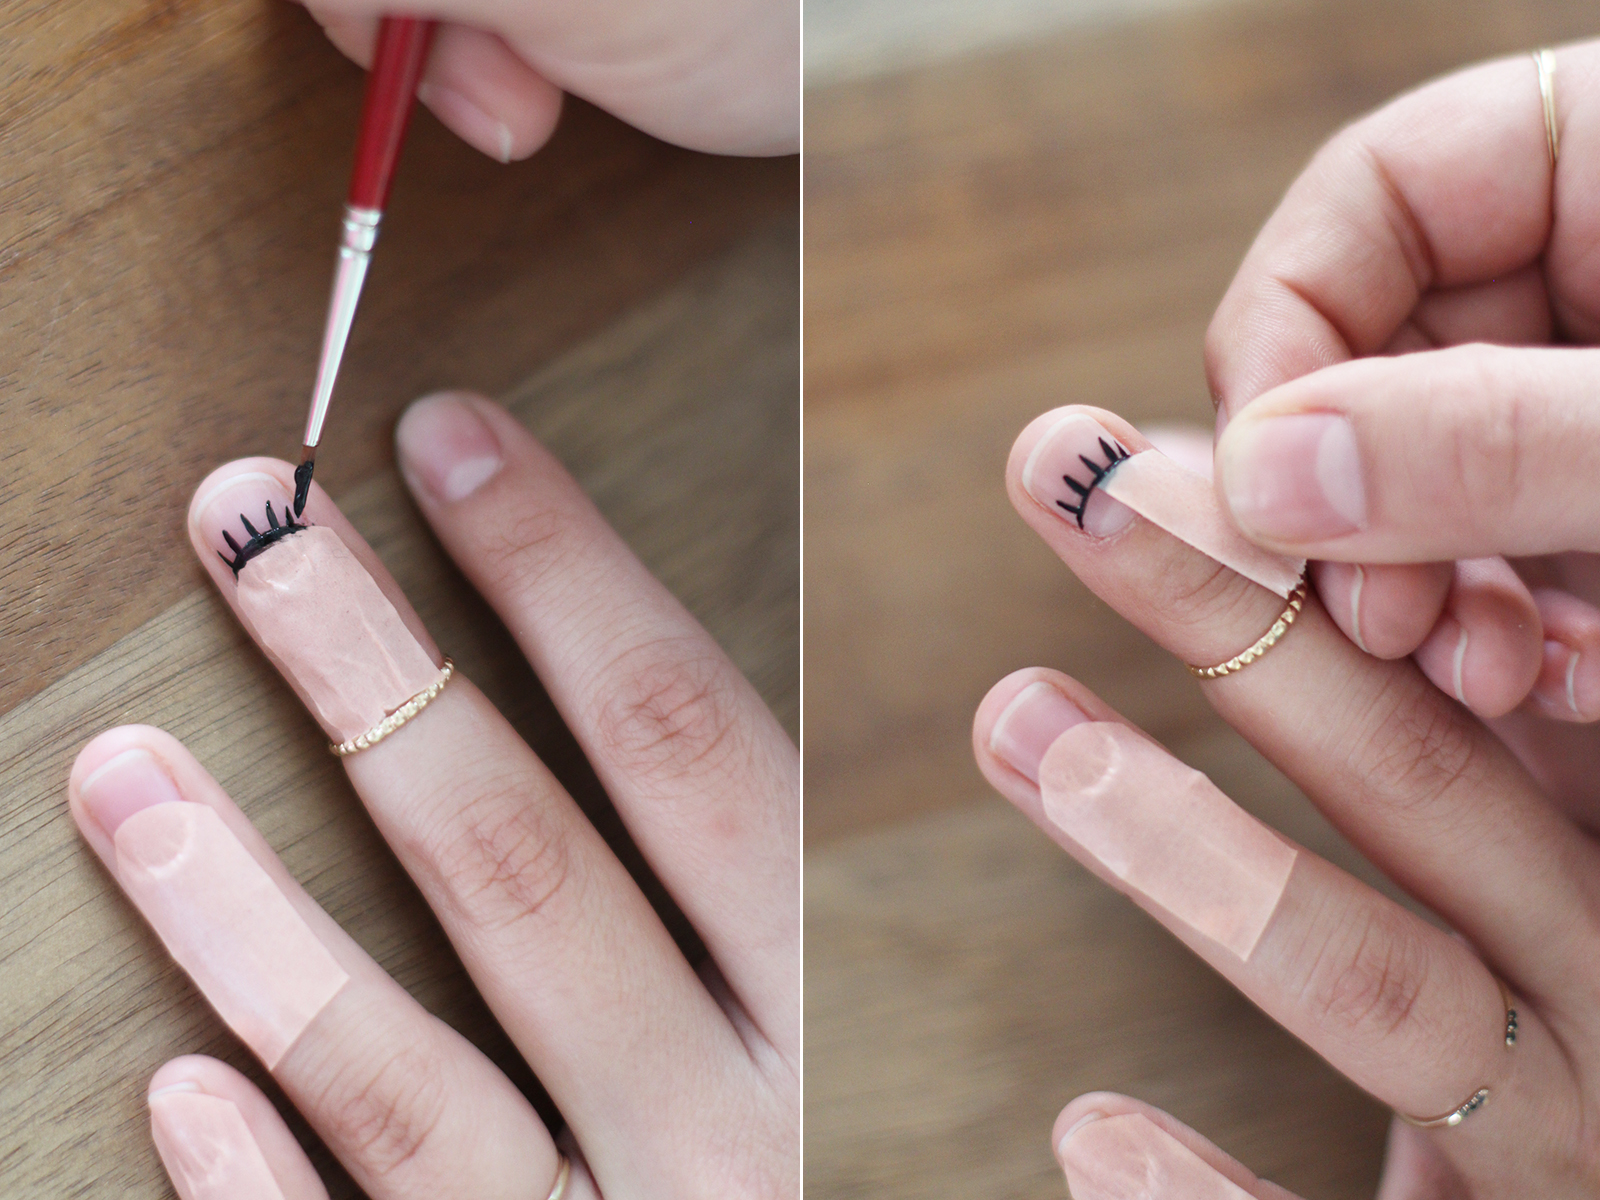 Diy eyelash nail art honestly wtf eyelashnails5 publicscrutiny Choice Image